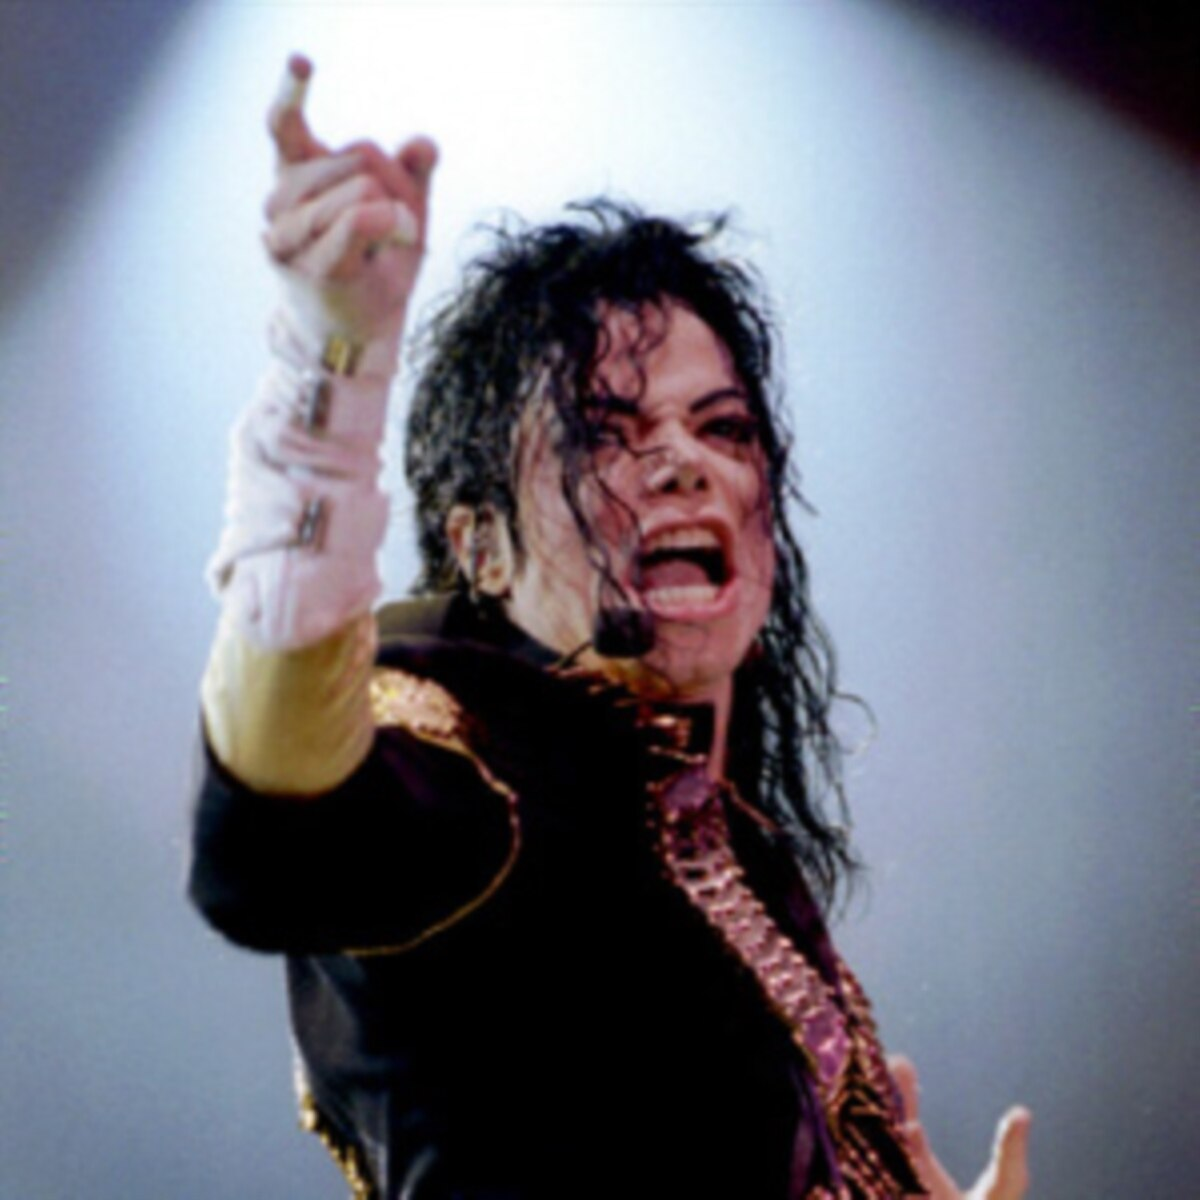 Michael Jackson, 1958-2009: He Amazed the World With His